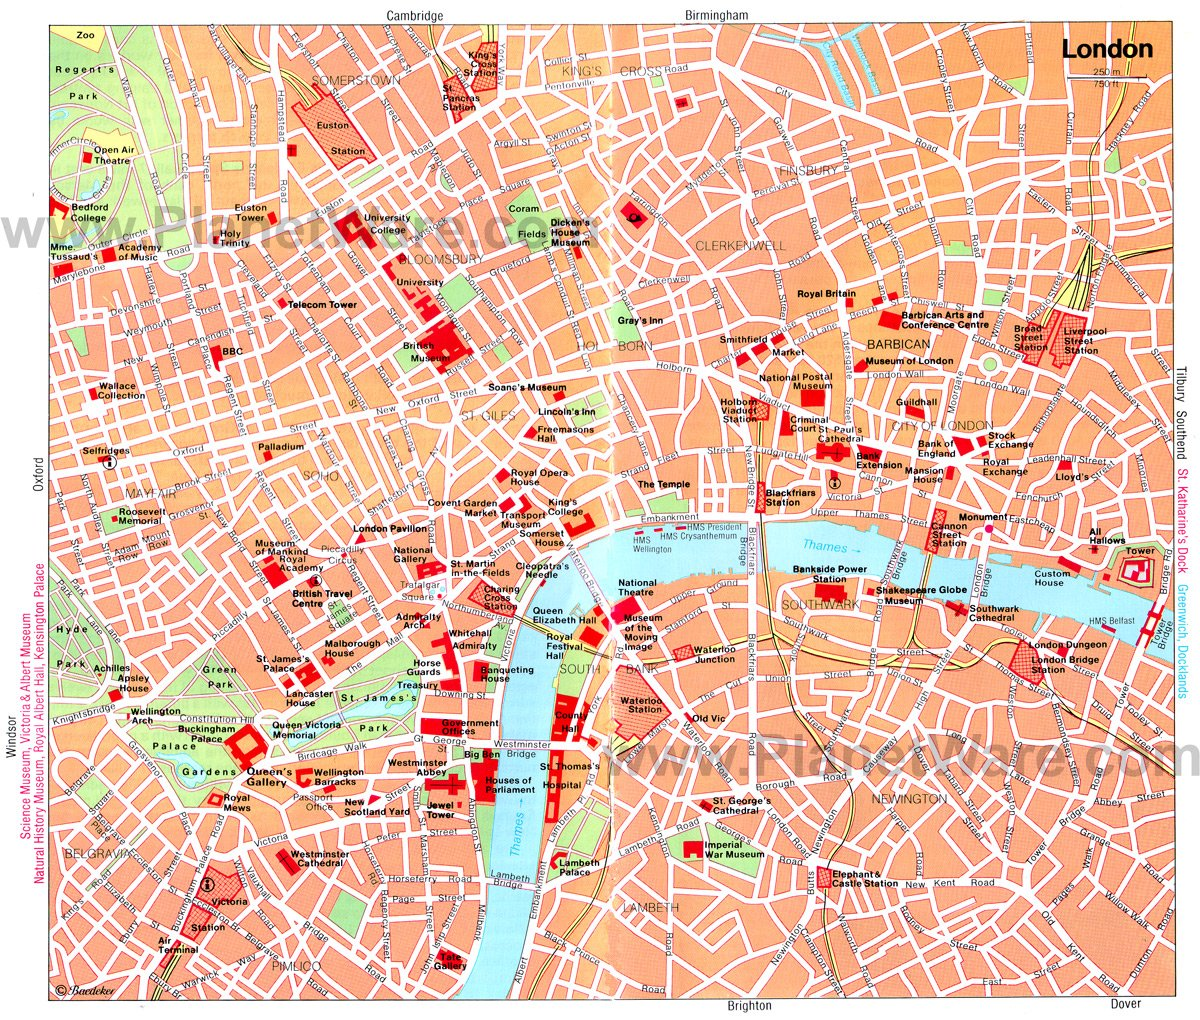 17 TopRated Tourist Attractions in London – Tourist Maps of London